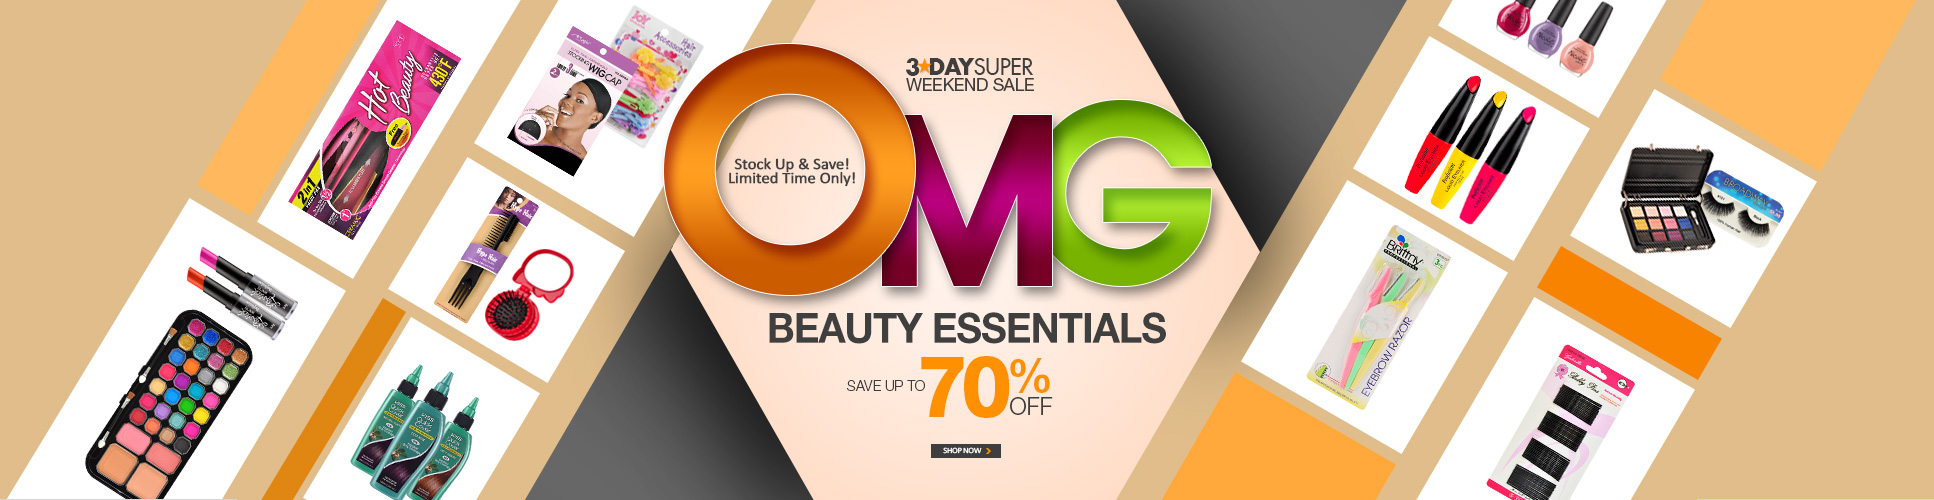 3-DAY OMG SALE! - BEAUTY ESSENTIALS